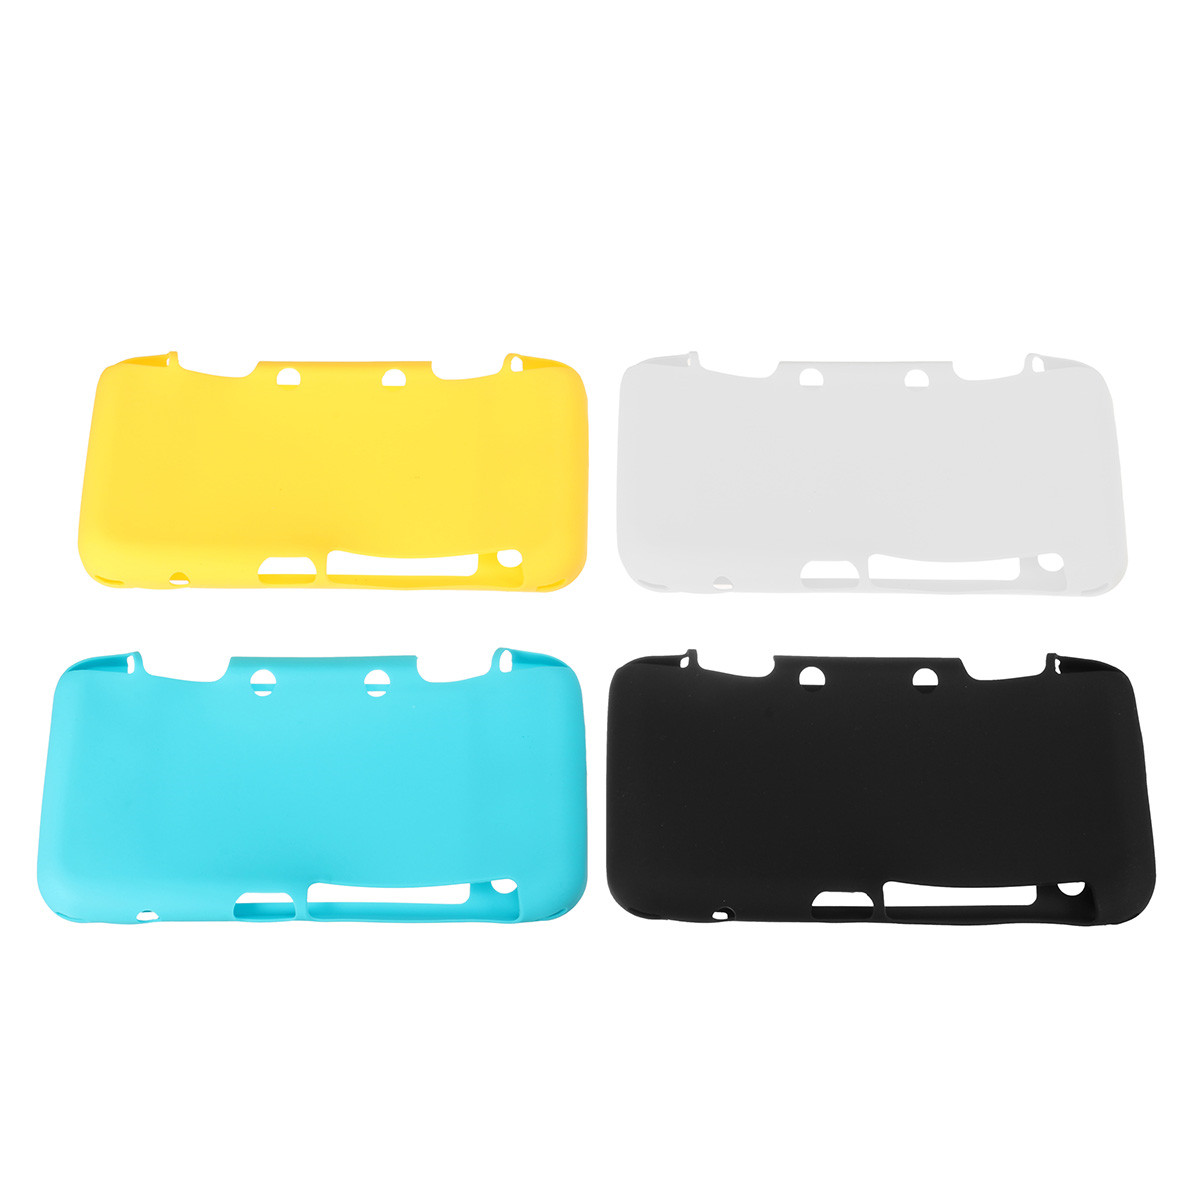 Silicone Full Protective Cover Skin Game Machine Protectors Set For Nintendo NEW 2DS LL